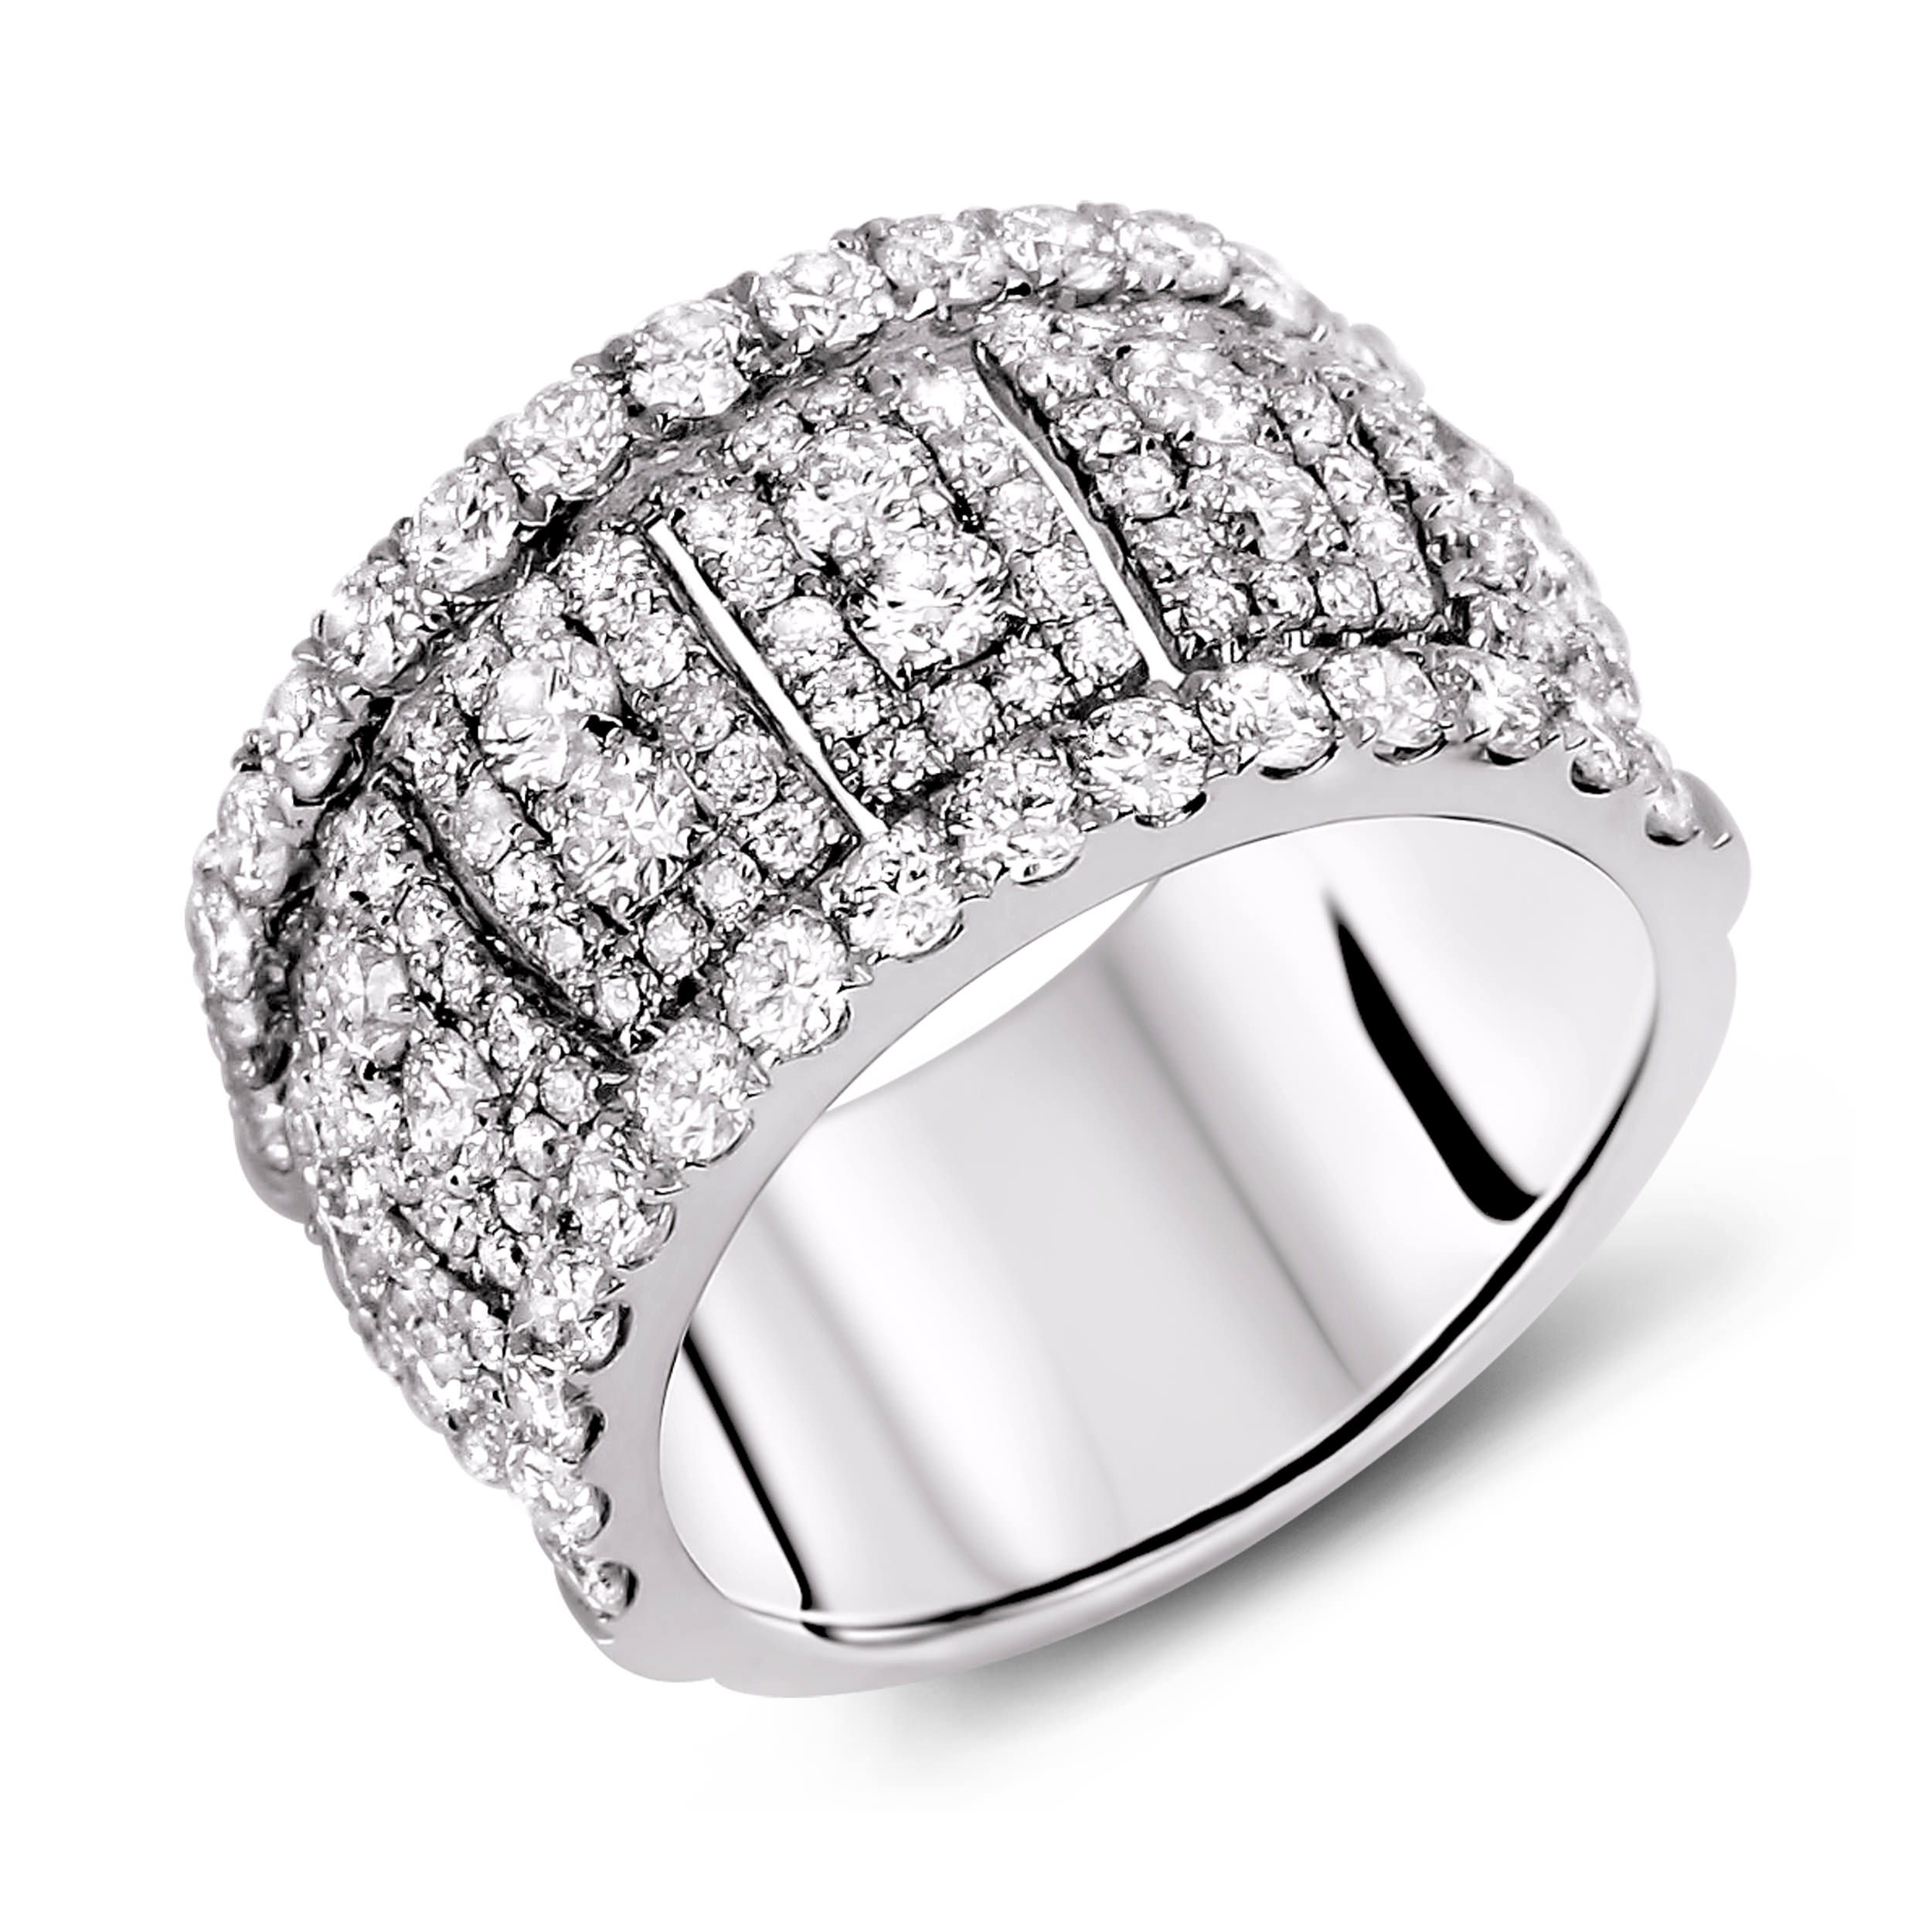 rings shop jewellery online anniversary products gold ring uk diamond